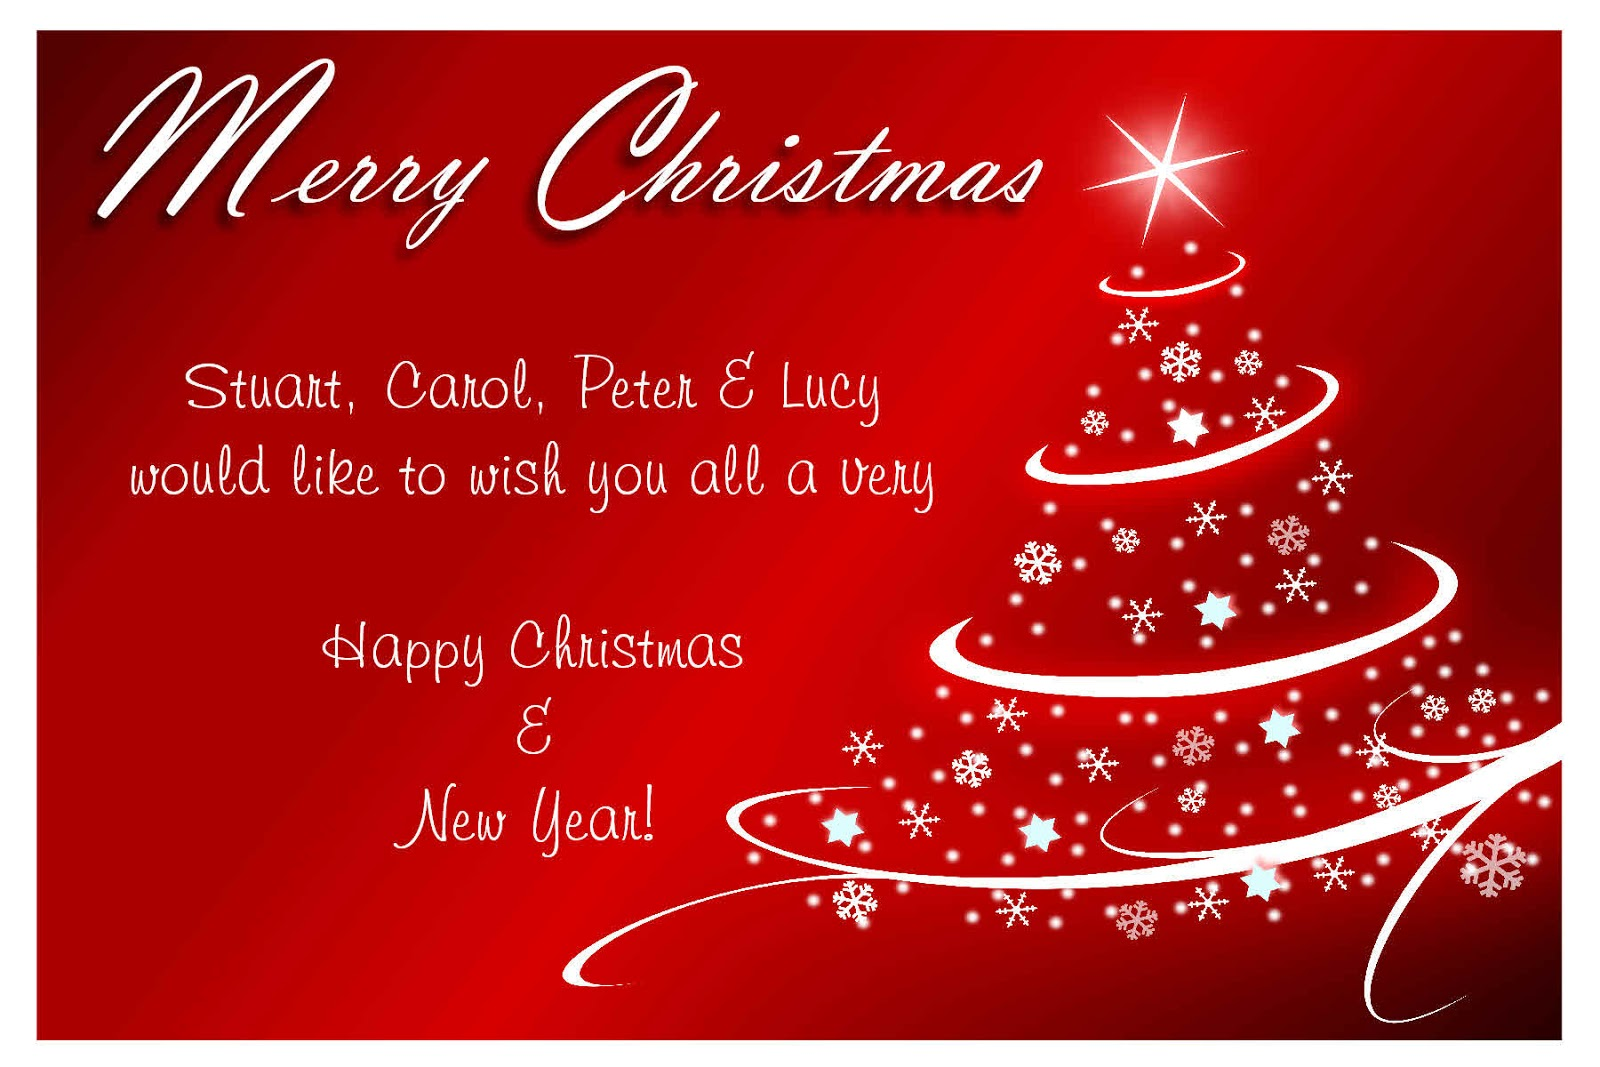 Christmas Cards Wallpapers High Quality Download Free